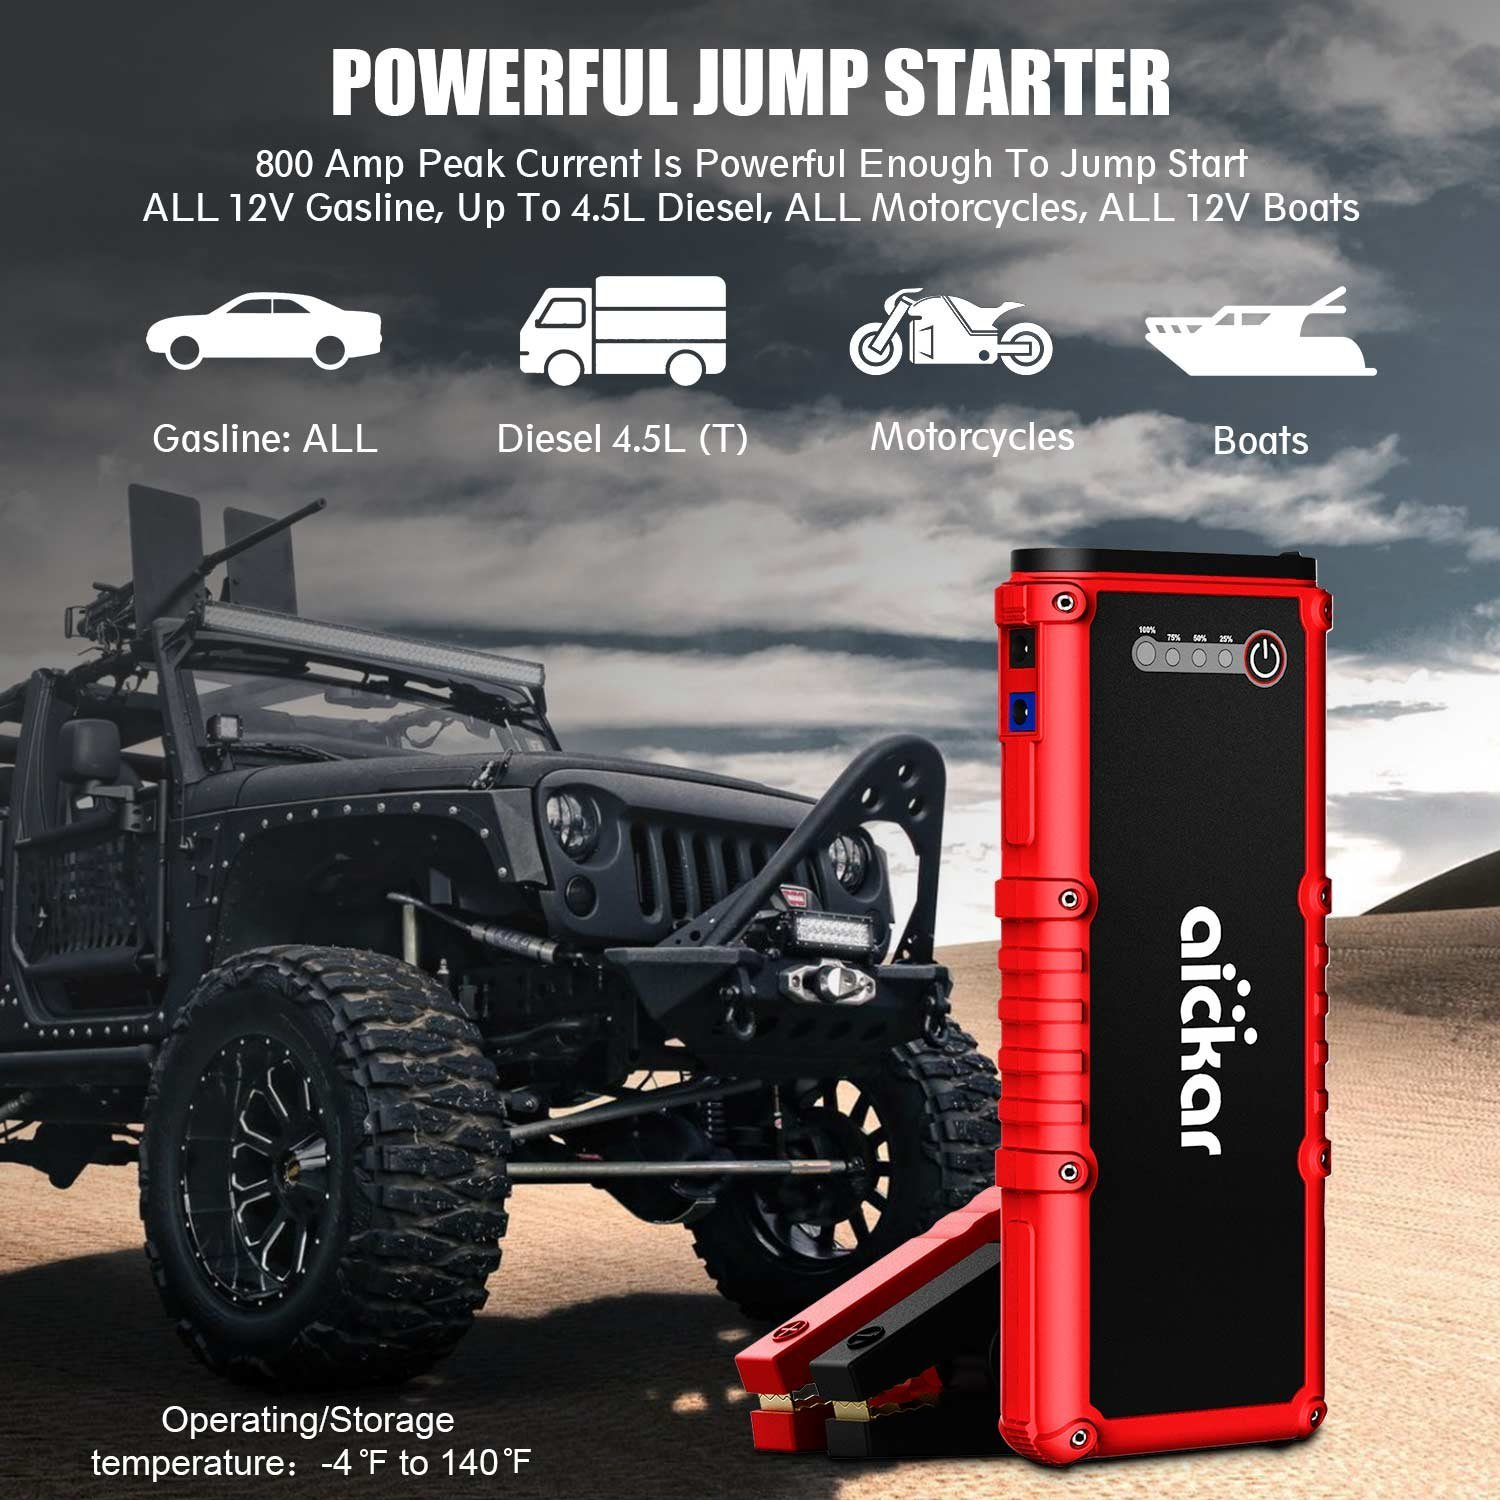 Aickar 800A Peak 19800mAh Car Jump Starter (All Gas & 4.5L Diesel Engine) Portable Car Battery Jump Starter, Power Bank, Built-in LED Flashlight with Car Jumper Cables Heavy Duty by aickar (Image #2)